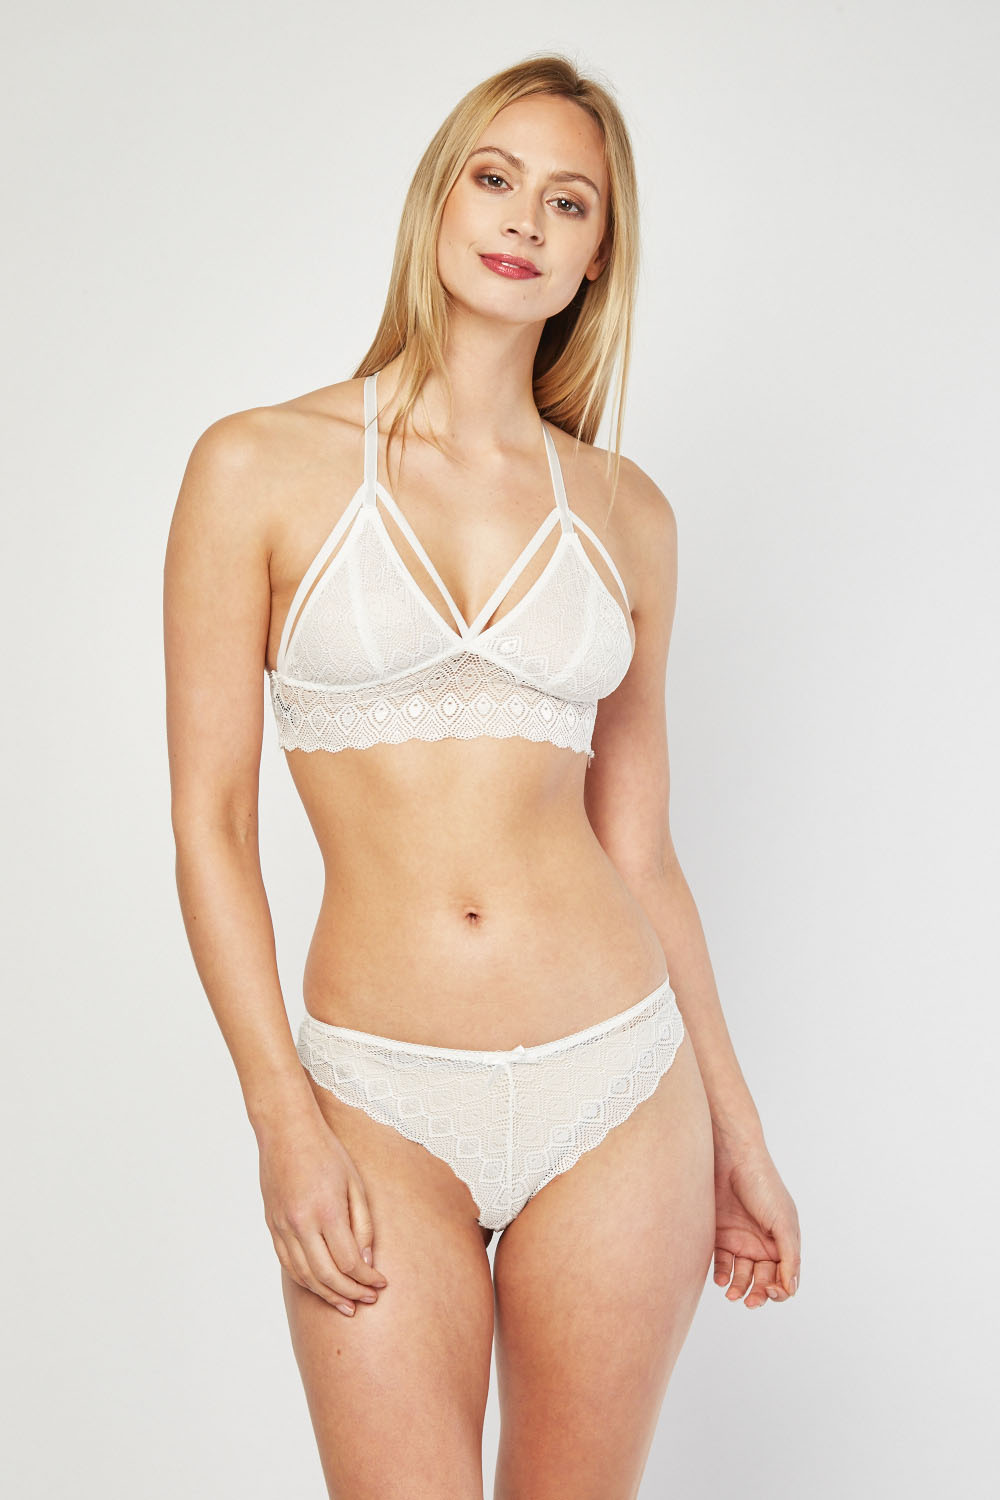 2bca0ca314687 Lace Bralette And Brazilian Brief Set - 3 Colours - Just £5